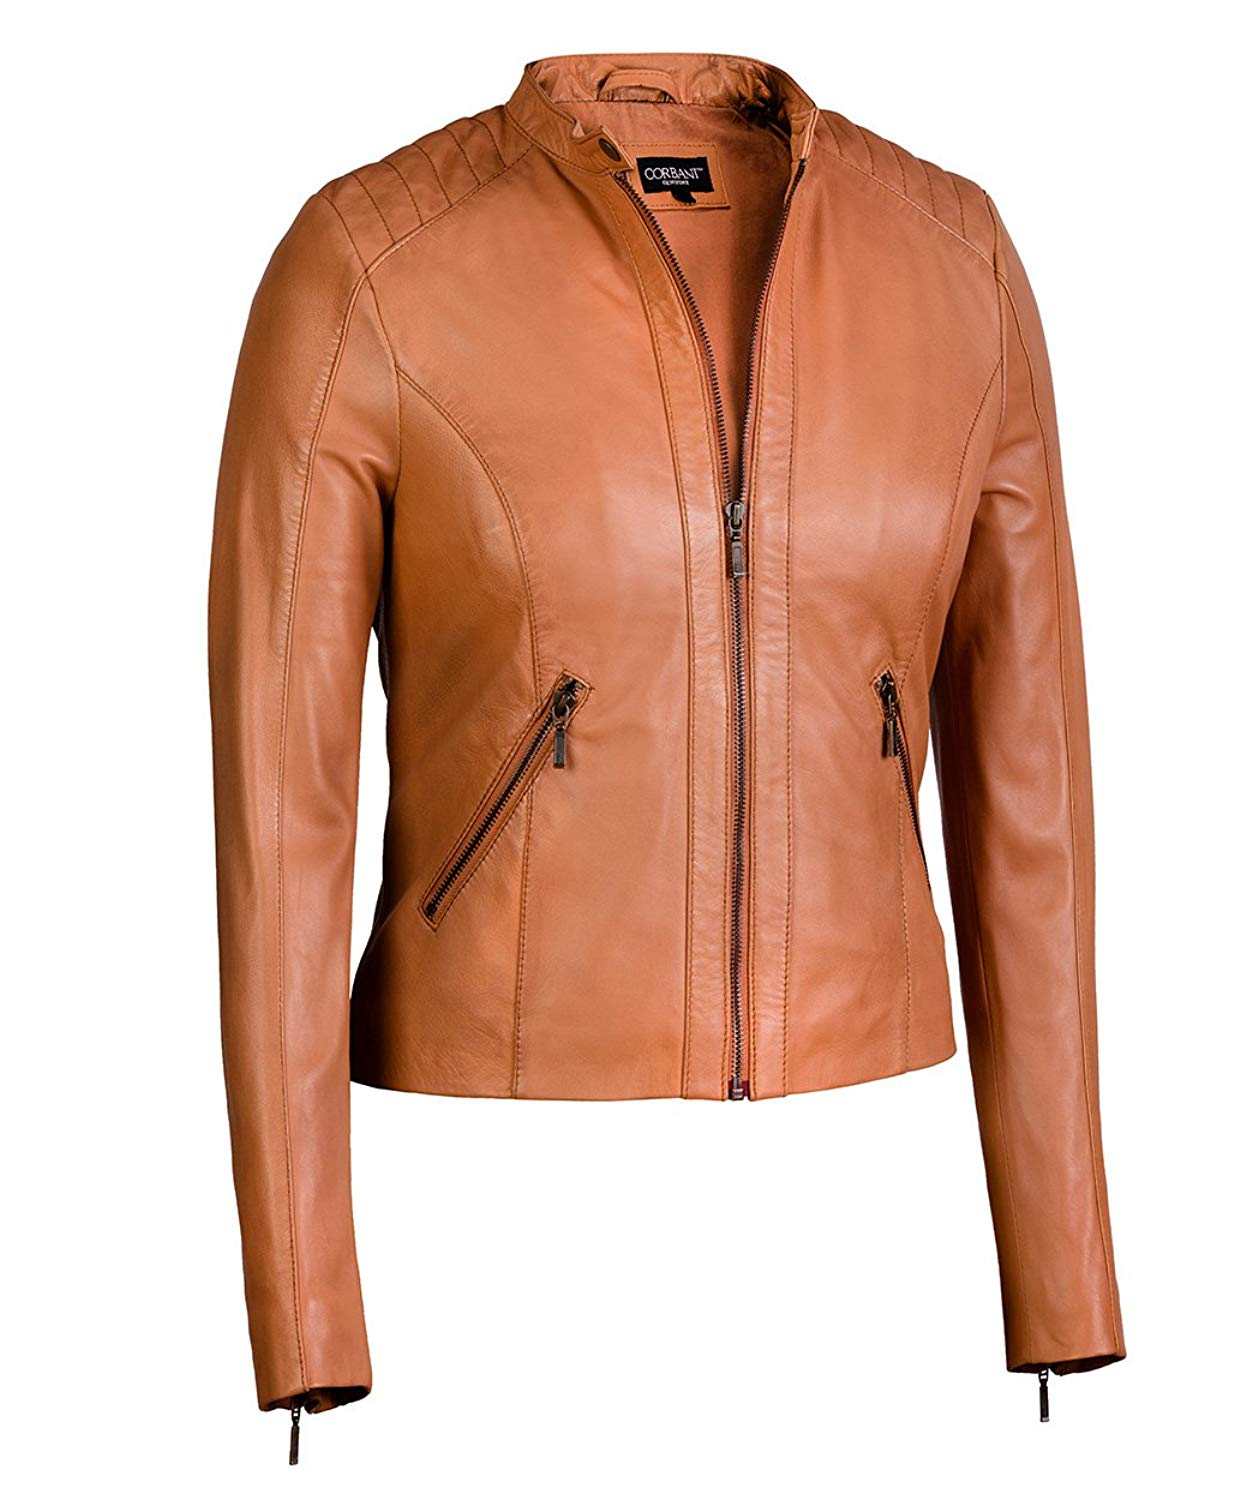 Women's Moto Jacket in Cognac from Soft Genuine Lambskin Leather (Large, Cognac)